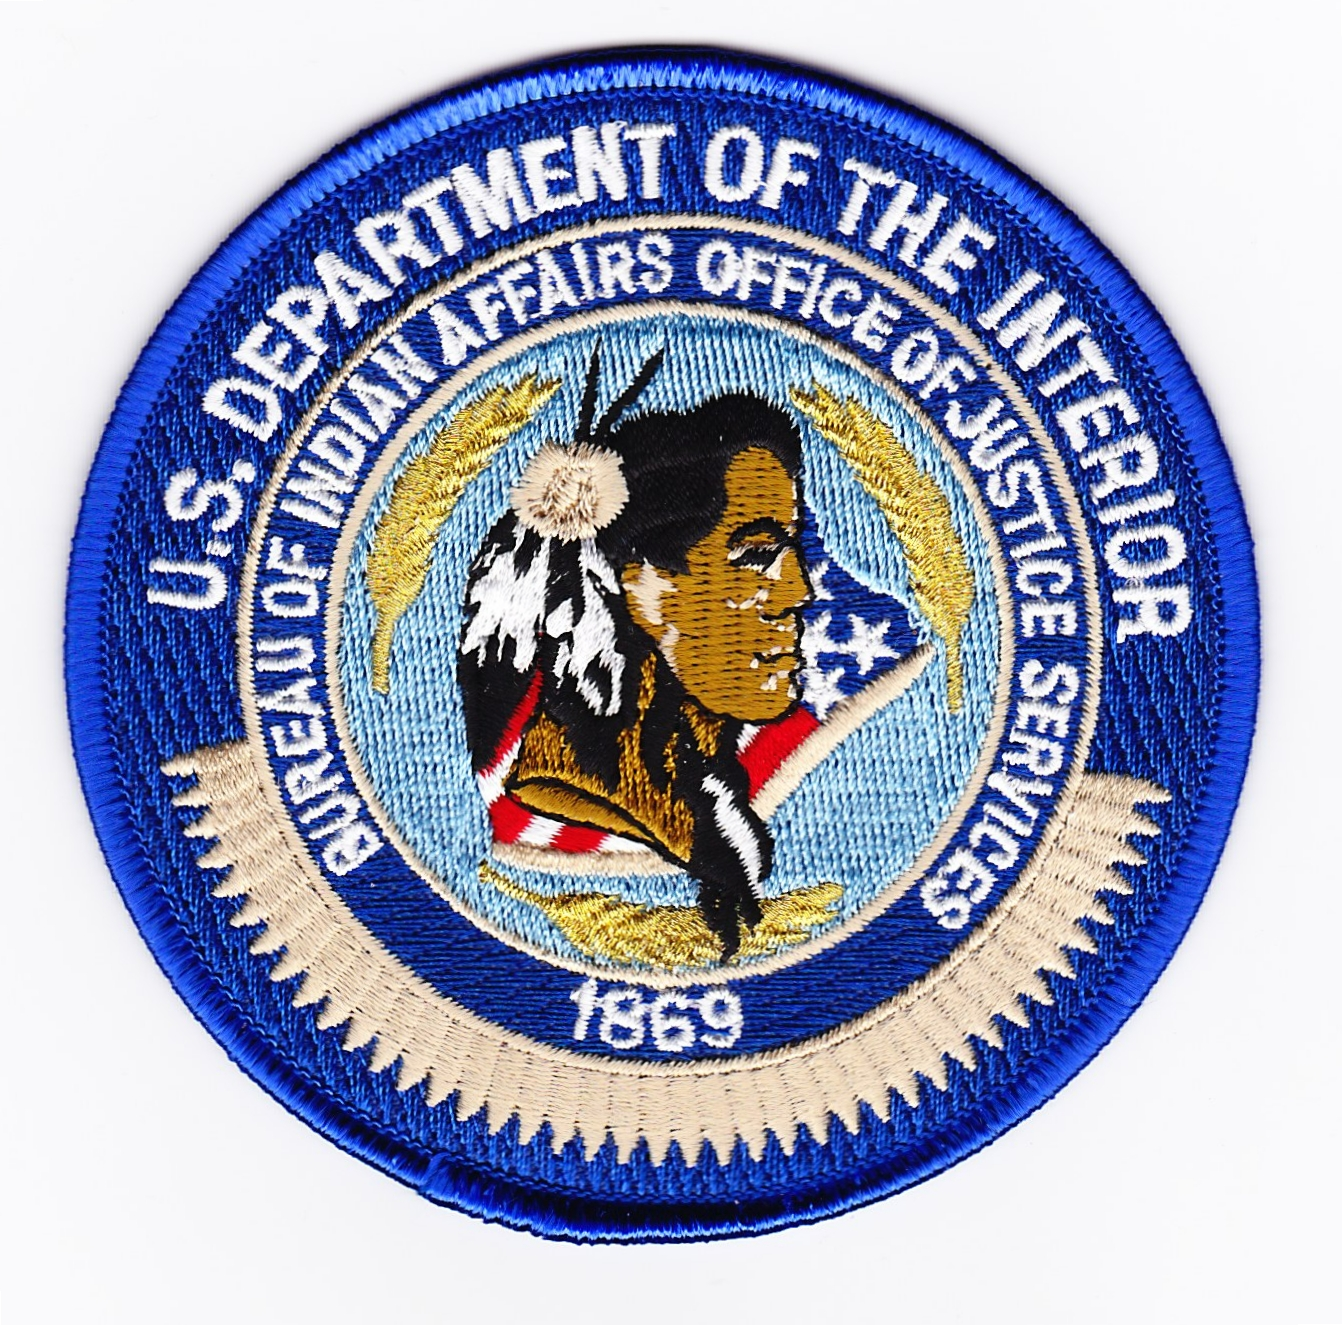 Fed bureau of indian affairs office of justice services - United states department of the interior bureau of indian affairs ...